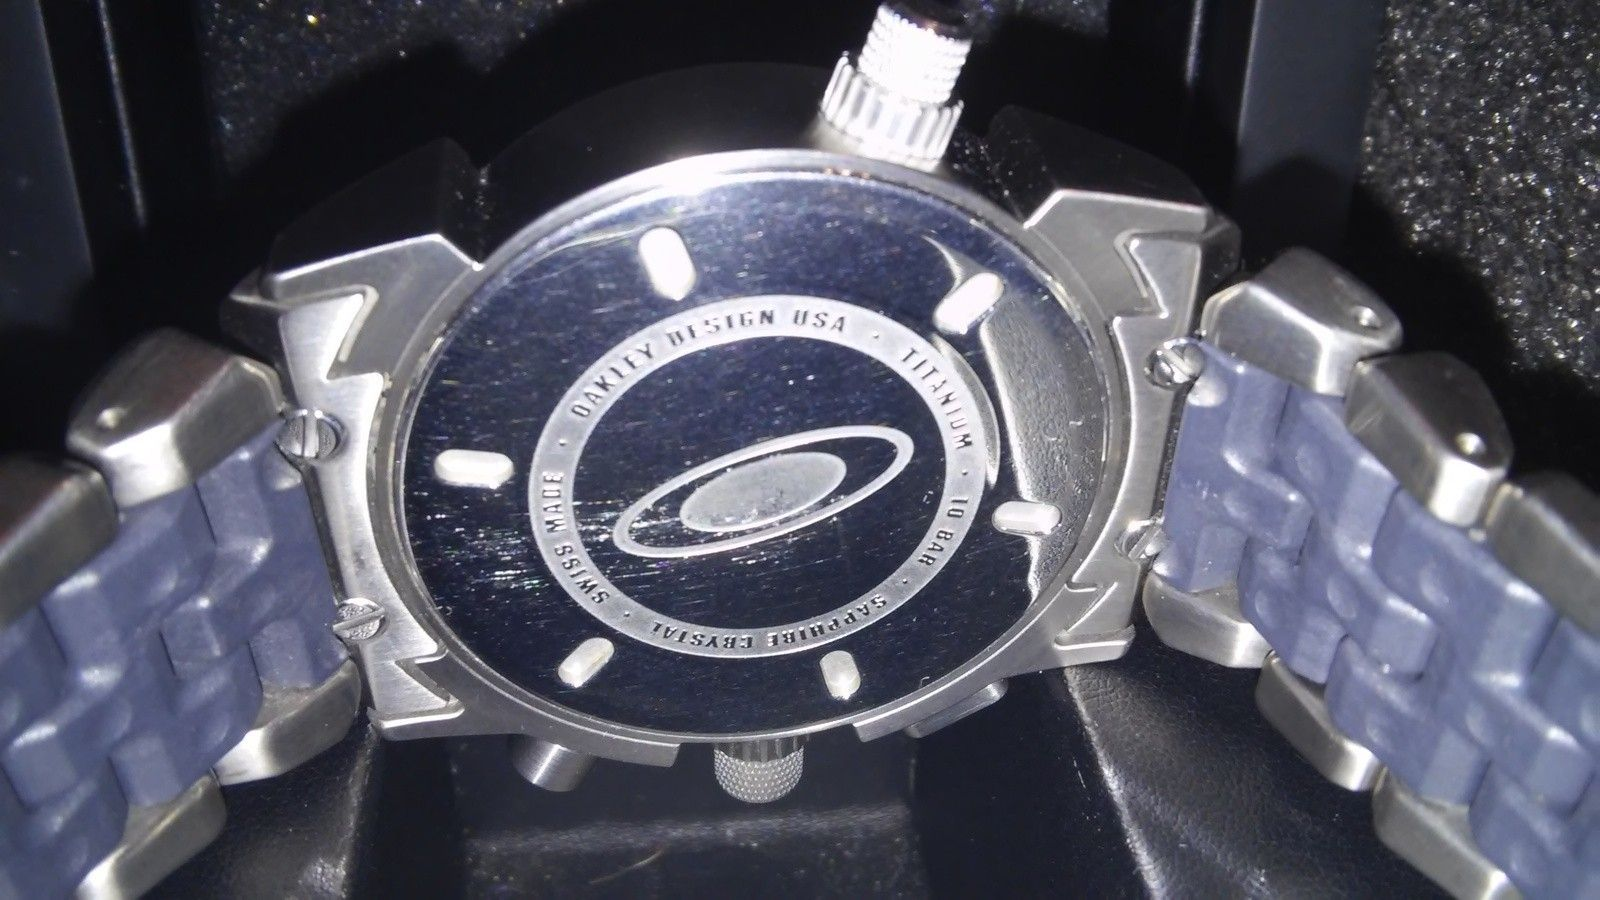 12 gauge titanium/carbon fiber watch - 20150323_153432.jpg